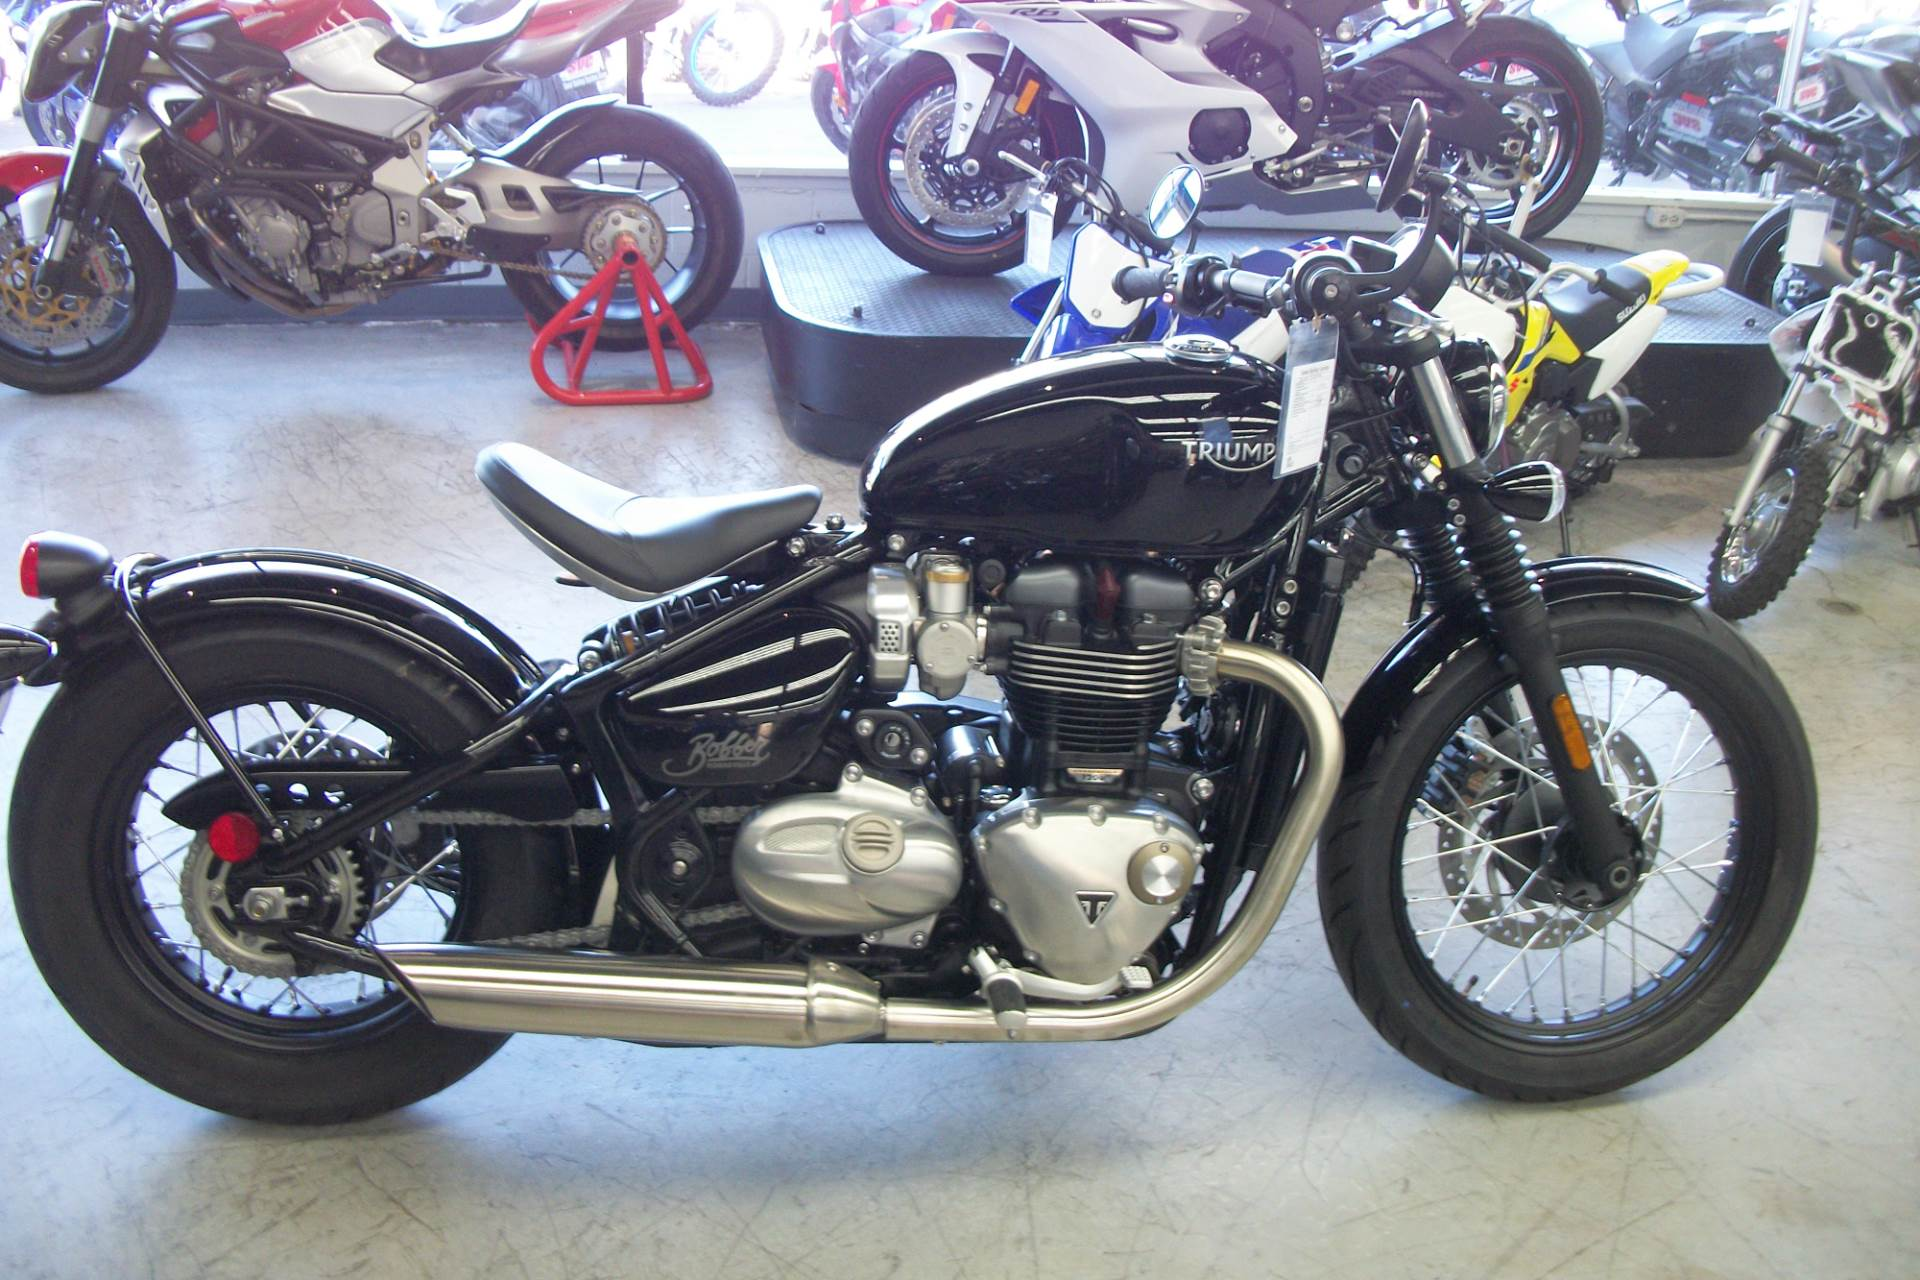 New 2019 Triumph Bonneville Bobber Motorcycles In Simi Valley Ca